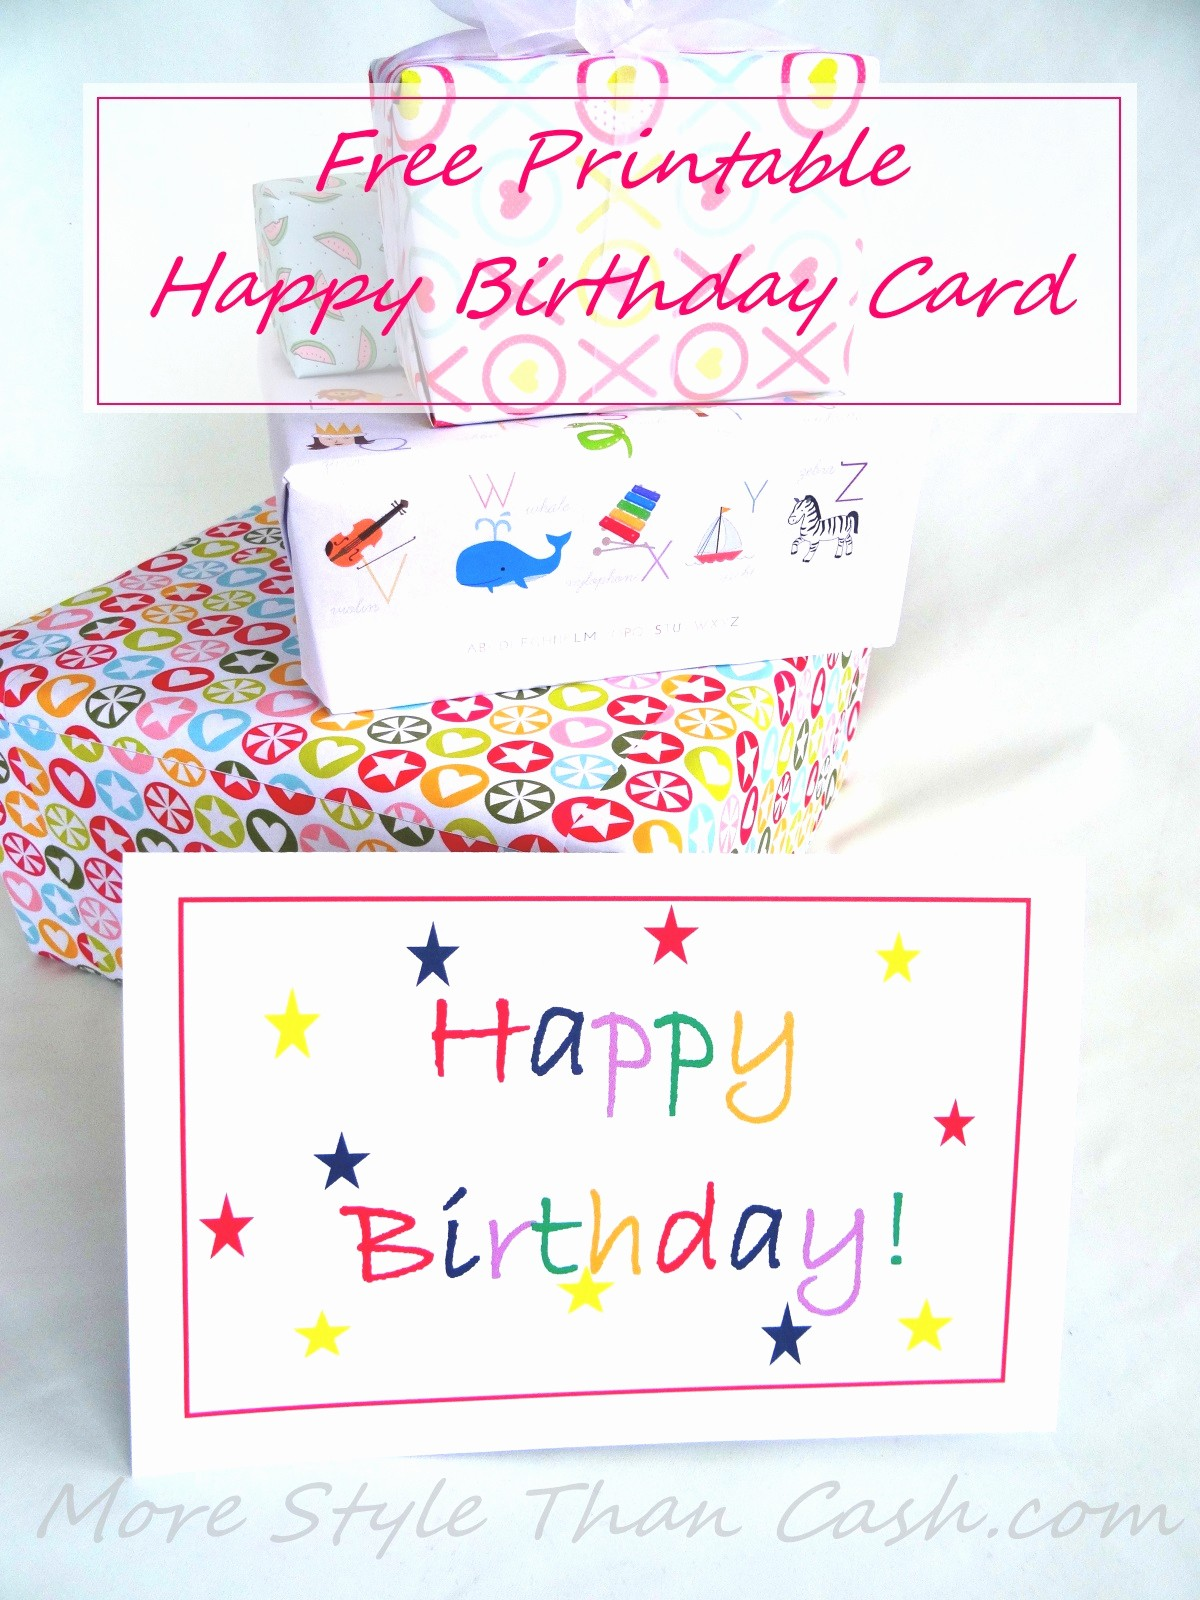 Happy Birthday Certificate Free Printable Lovely Free Printable Birthday Card